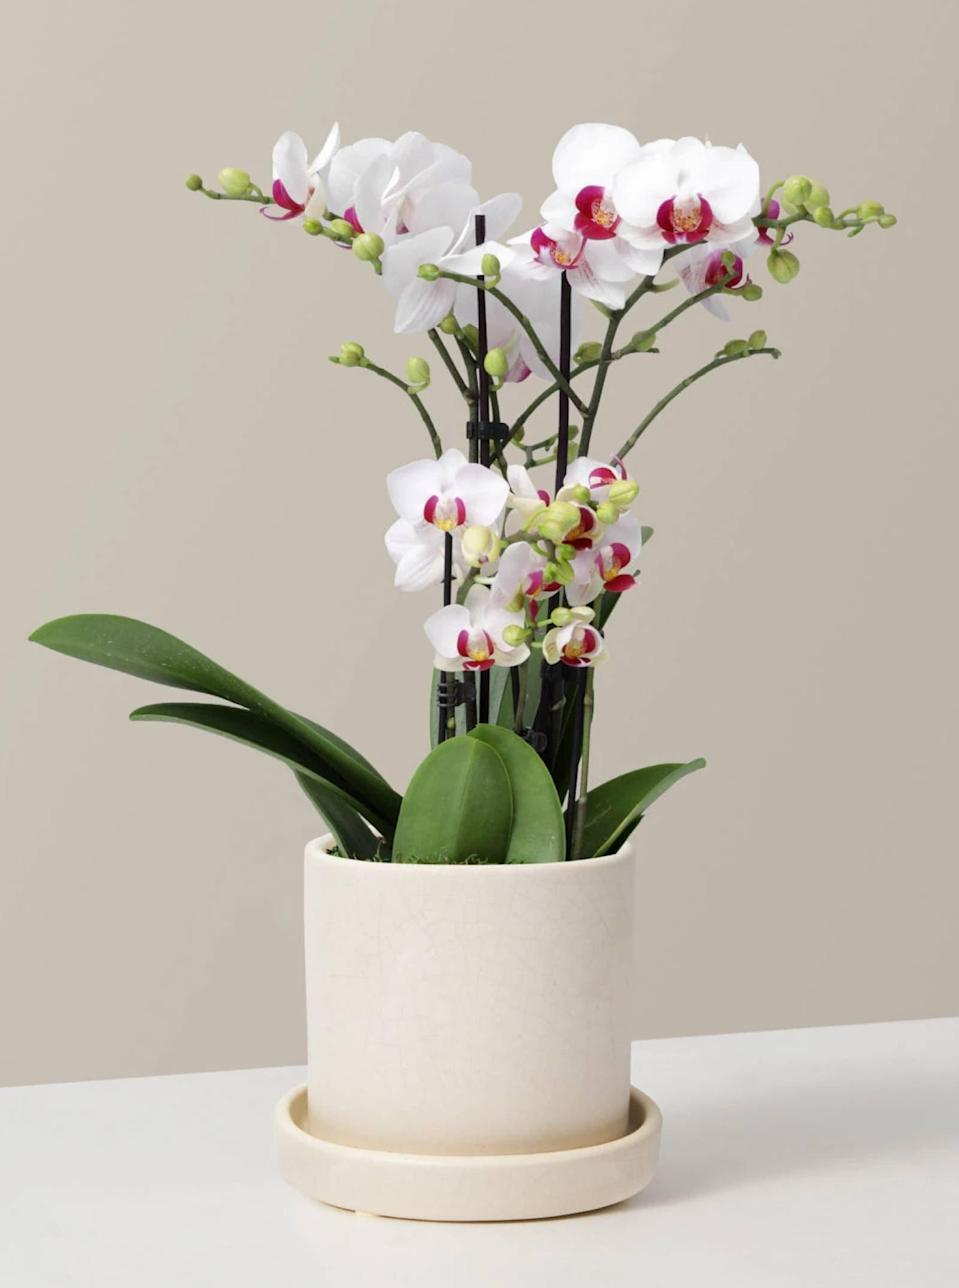 """Home is where the <del>WiFi</del> plants are—and The Sill is a one-stop-shop for potted, <a href=""""https://www.glamour.com/gallery/houseplants-for-beginners?mbid=synd_yahoo_rss"""" rel=""""nofollow noopener"""" target=""""_blank"""" data-ylk=""""slk:beginner-friendly options"""" class=""""link rapid-noclick-resp"""">beginner-friendly options</a>. We're into this pretty white orchid because it's one of the easiest of its kind to grow, but the online retailer has everything from <a href=""""https://cna.st/affiliate-link/DBDZJrJC3N2Eyr17FBJscxbwJBpDGEUU8KyMkYe7bg9YKv7V3zURbm98NyDSrjXik83nCPdd6hecSoeLg3bH3SxEx4RY7ckBNE7SoZT6sc5eSFYfqKfx899Bqizxf5p?cid=608189fb24ab1f022e3863c8"""" rel=""""nofollow noopener"""" target=""""_blank"""" data-ylk=""""slk:ZZ Plants"""" class=""""link rapid-noclick-resp"""">ZZ Plants</a> to lush <a href=""""https://cna.st/affiliate-link/56DCwaYCWvGPjHXmienrVz5opS6W4evTDbt7hPxRtz7JgjNTf5LXLNYaJCWhbvAAaAFLfMo8wmaYxyHyFiLnd7hkP9zS3PGrTeYe2a2SsFoFbPeb3tDXJkmJER96F5WWaR?cid=608189fb24ab1f022e3863c8"""" rel=""""nofollow noopener"""" target=""""_blank"""" data-ylk=""""slk:Monsteras"""" class=""""link rapid-noclick-resp"""">Monsteras</a>. The Sill ships nationwide; just make sure to order ahead of time since it doesn't offer next-day delivery. $98, White Orchid. <a href=""""https://www.thesill.com/products/white-orchid?"""" rel=""""nofollow noopener"""" target=""""_blank"""" data-ylk=""""slk:Get it now!"""" class=""""link rapid-noclick-resp"""">Get it now!</a>"""